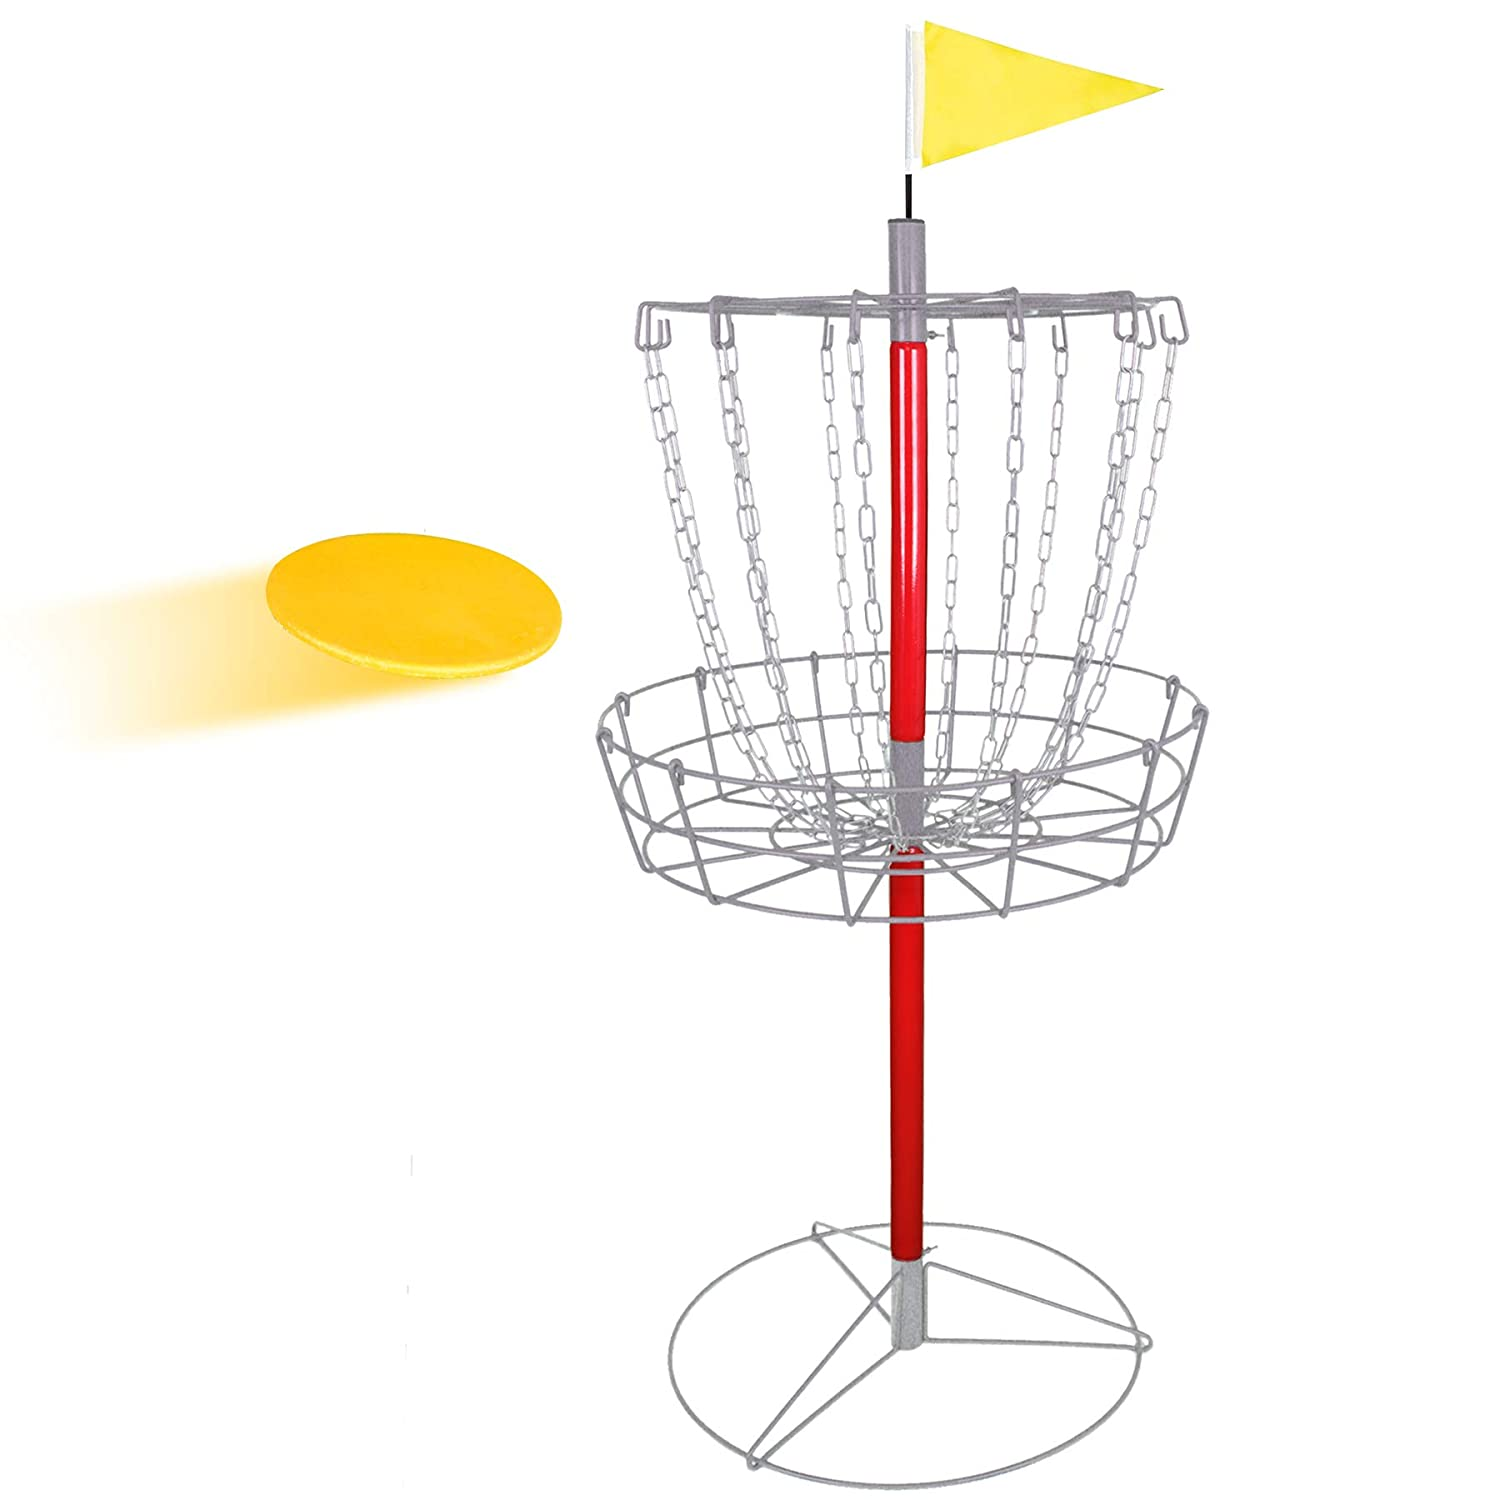 49267b0f5b2096 Amazon.com : ZENSTYLE Portable 12-Chain Disc Golf Basket Target &  Accessories - Separable Lightweight Iron Frolf/Frisbee Golf Practice Set  for ...